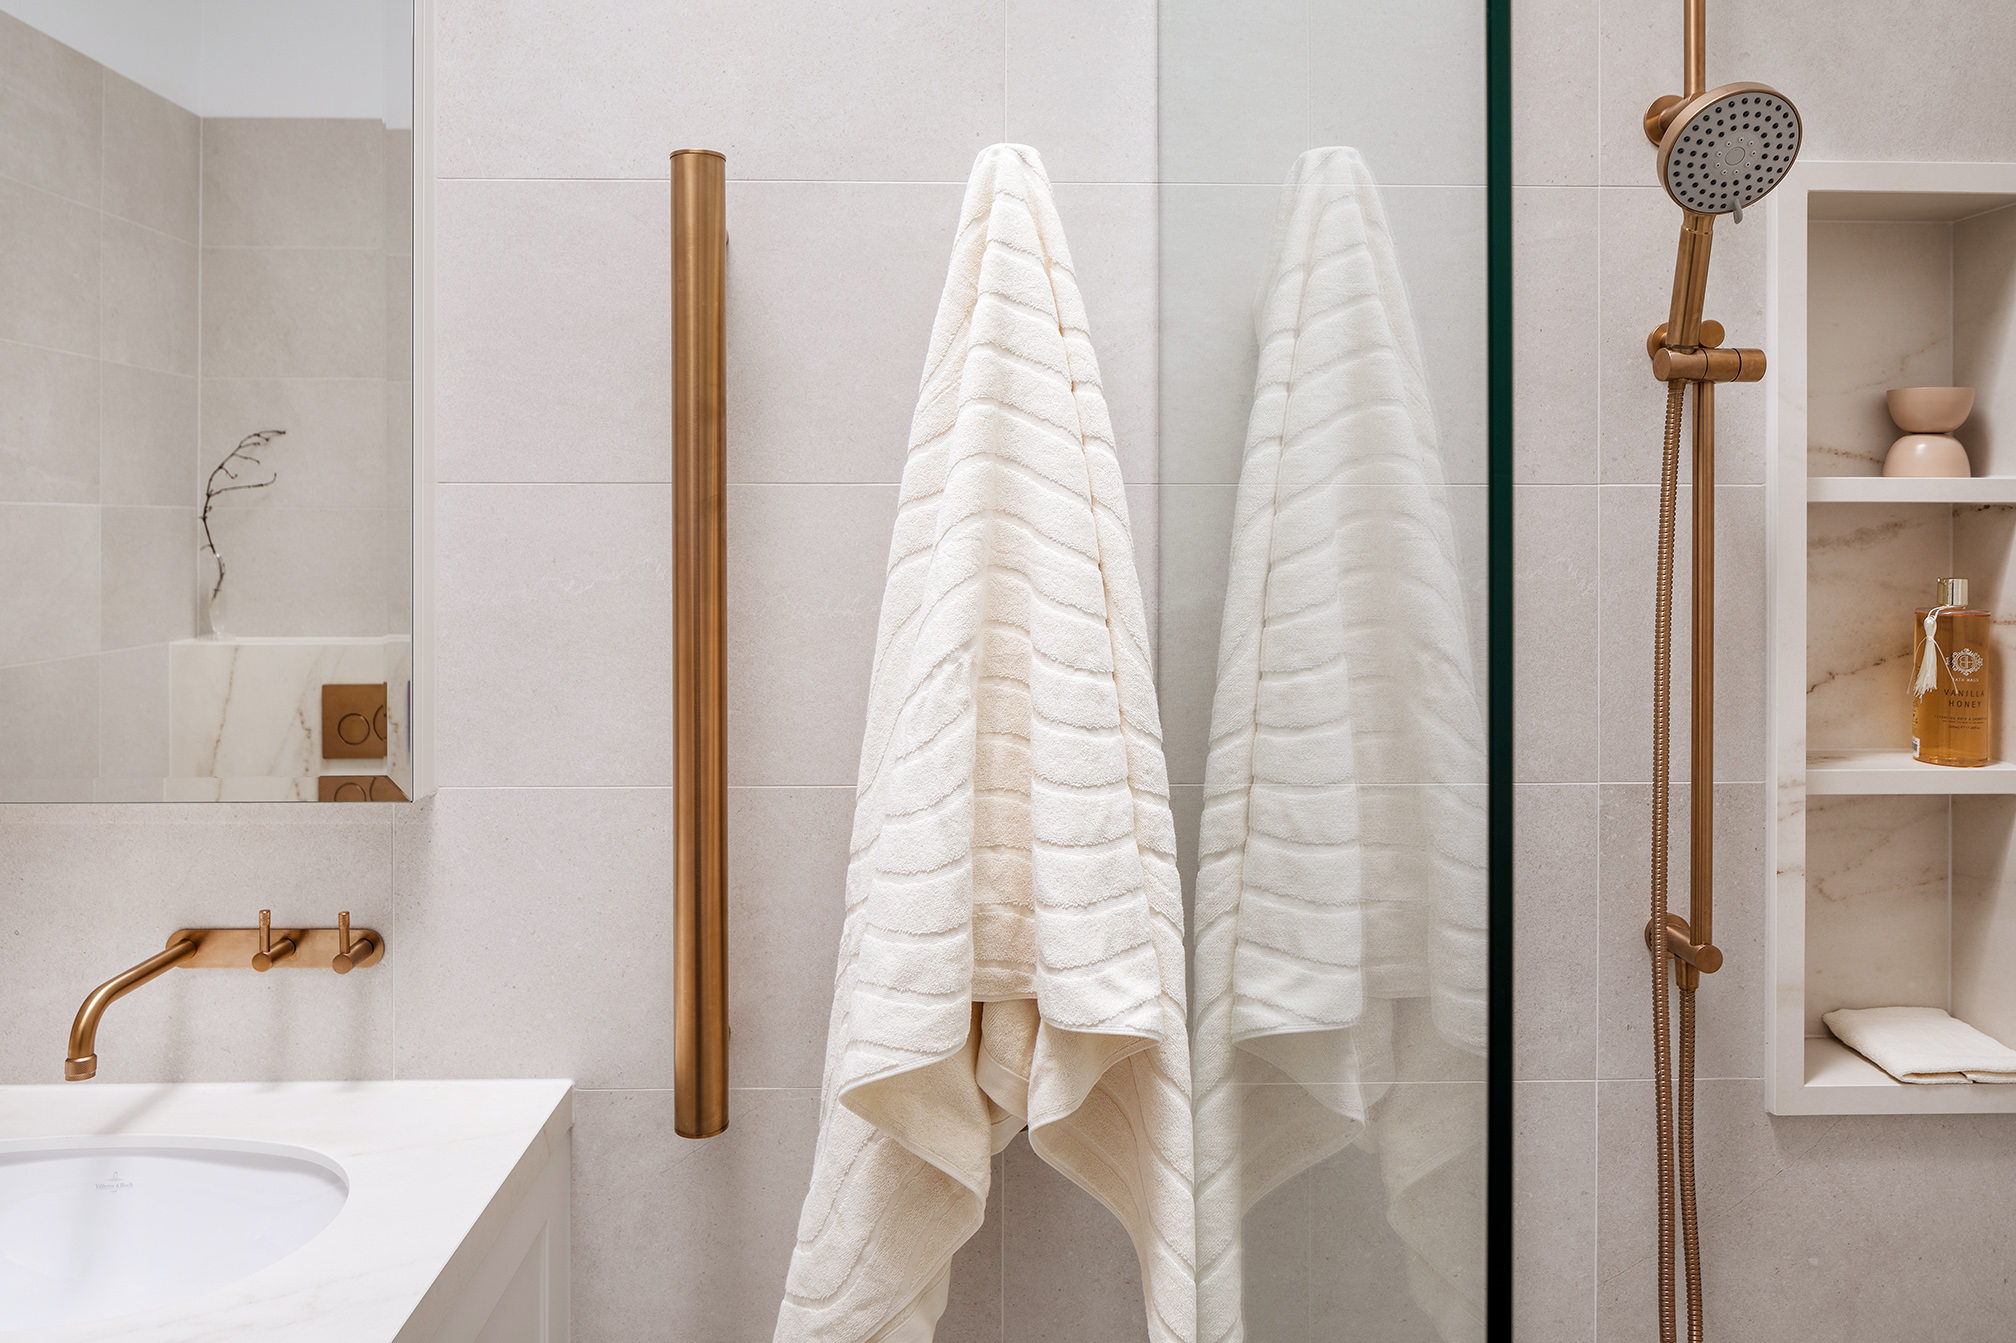 Mount Lawley Traditional Skylit Ensuite - Heated vertical towel rails in brass